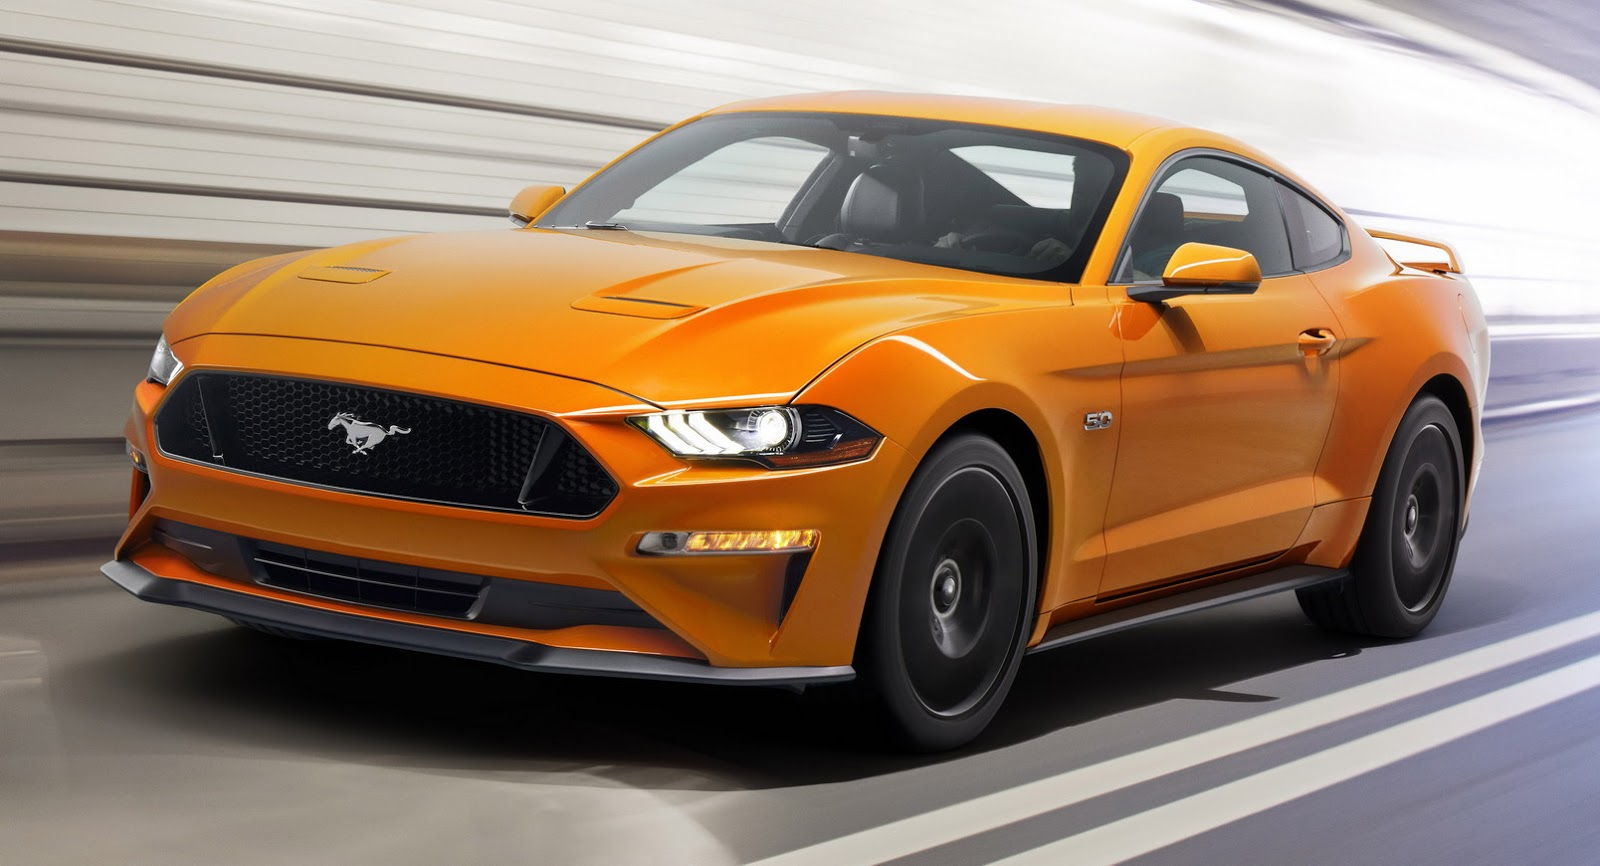 2018 vs 2017 ford mustang poll photo comparison carscoops. Black Bedroom Furniture Sets. Home Design Ideas